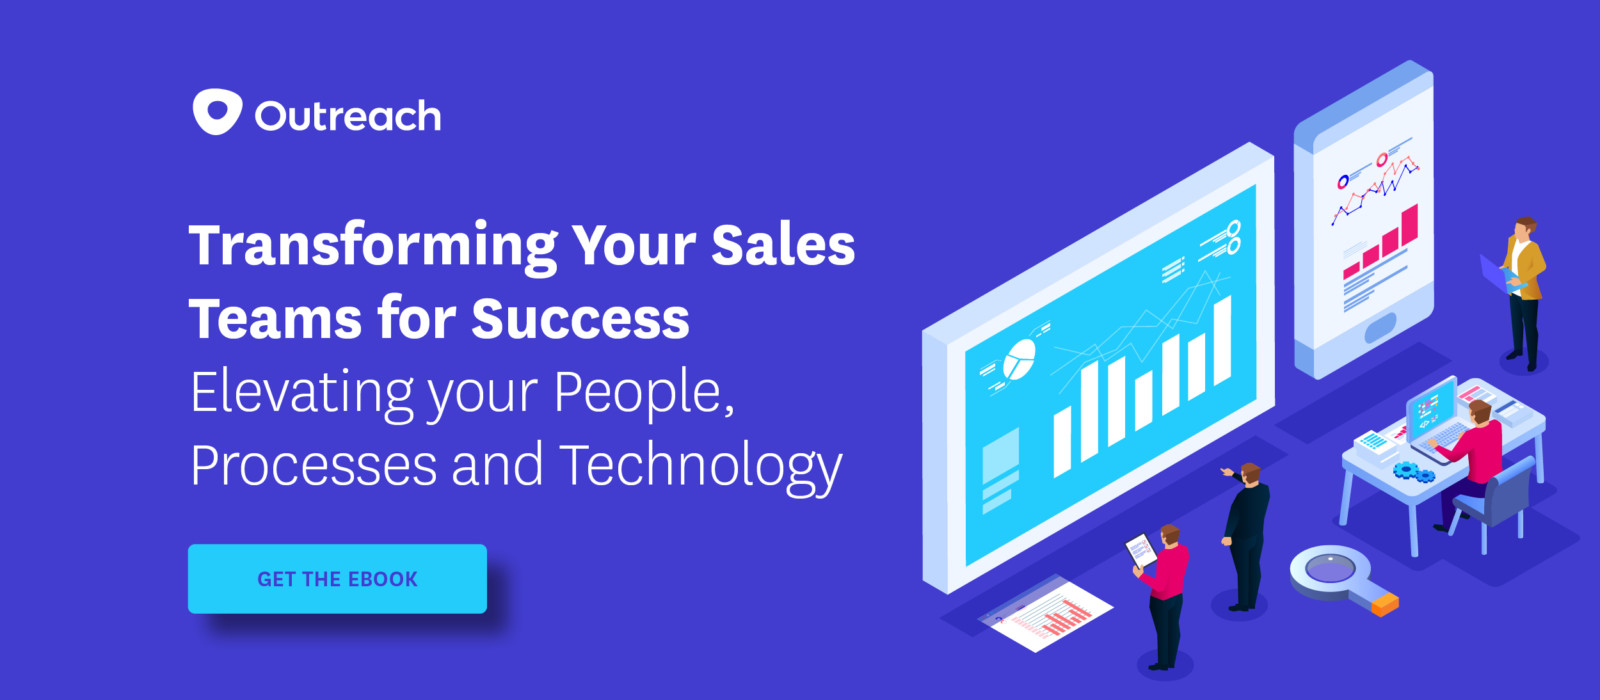 Transforming Your Sales Teams for Success: Elevating your People, Processes and Technology